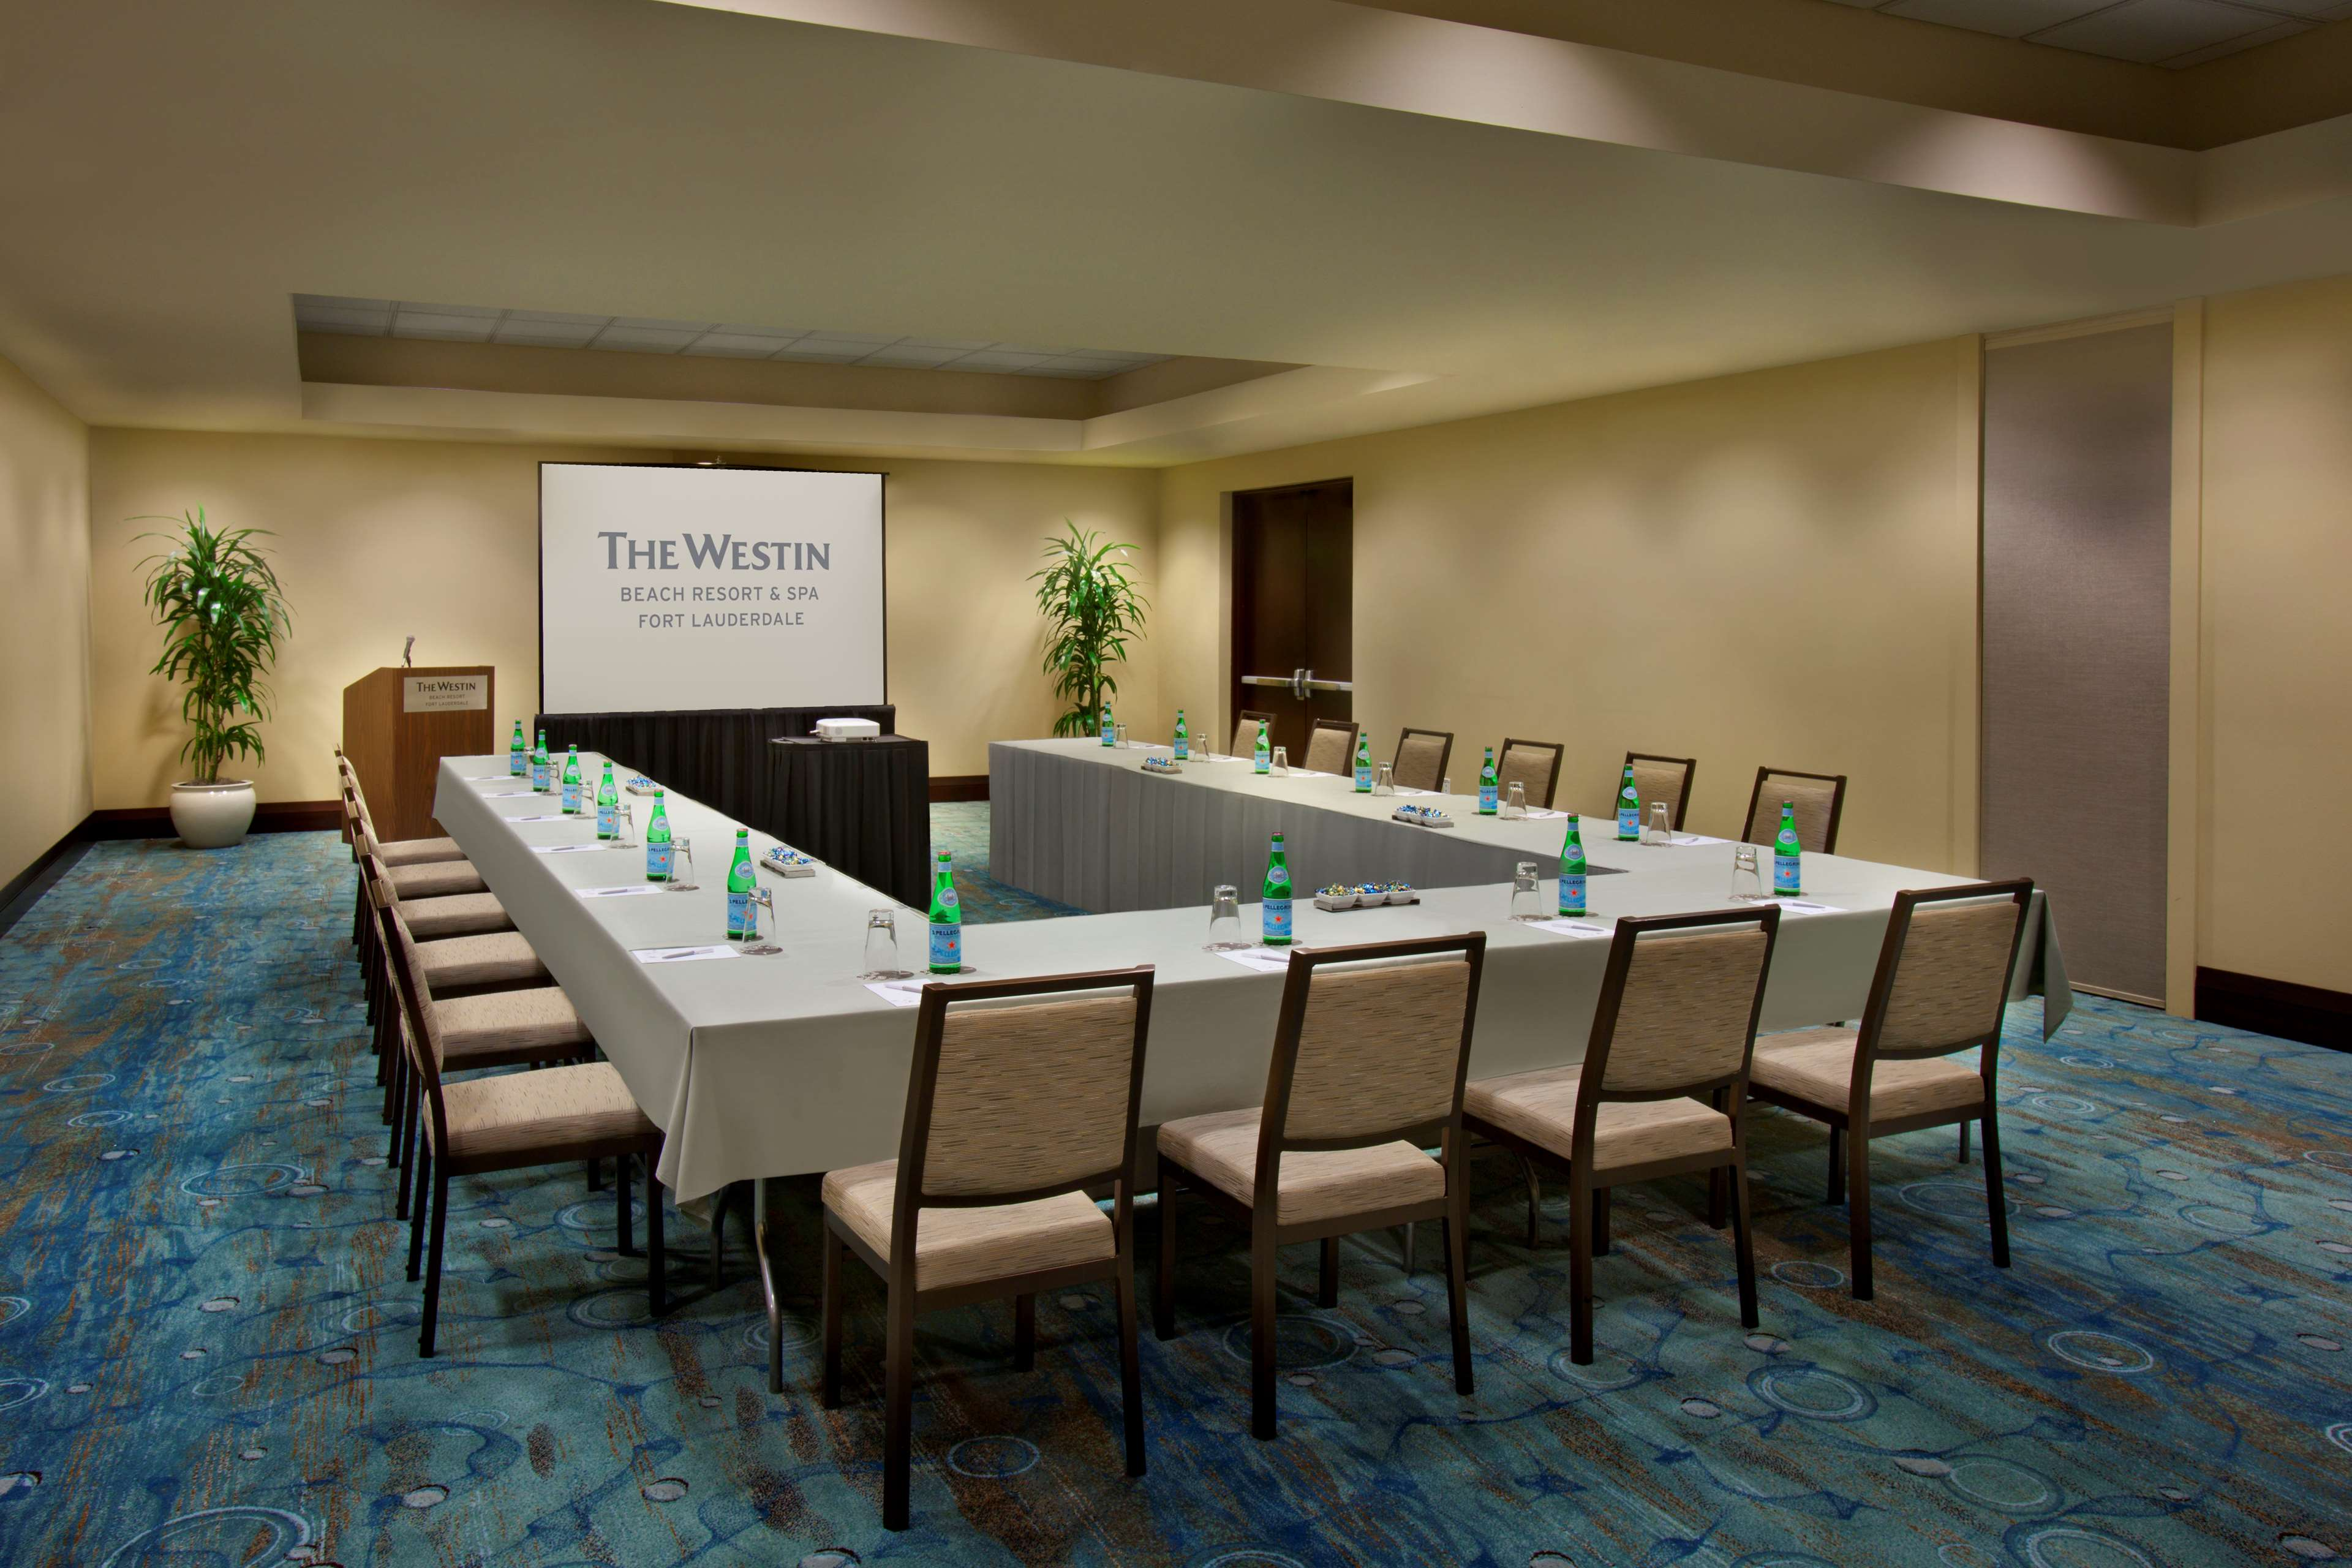 The Westin Fort Lauderdale Beach Resort image 15